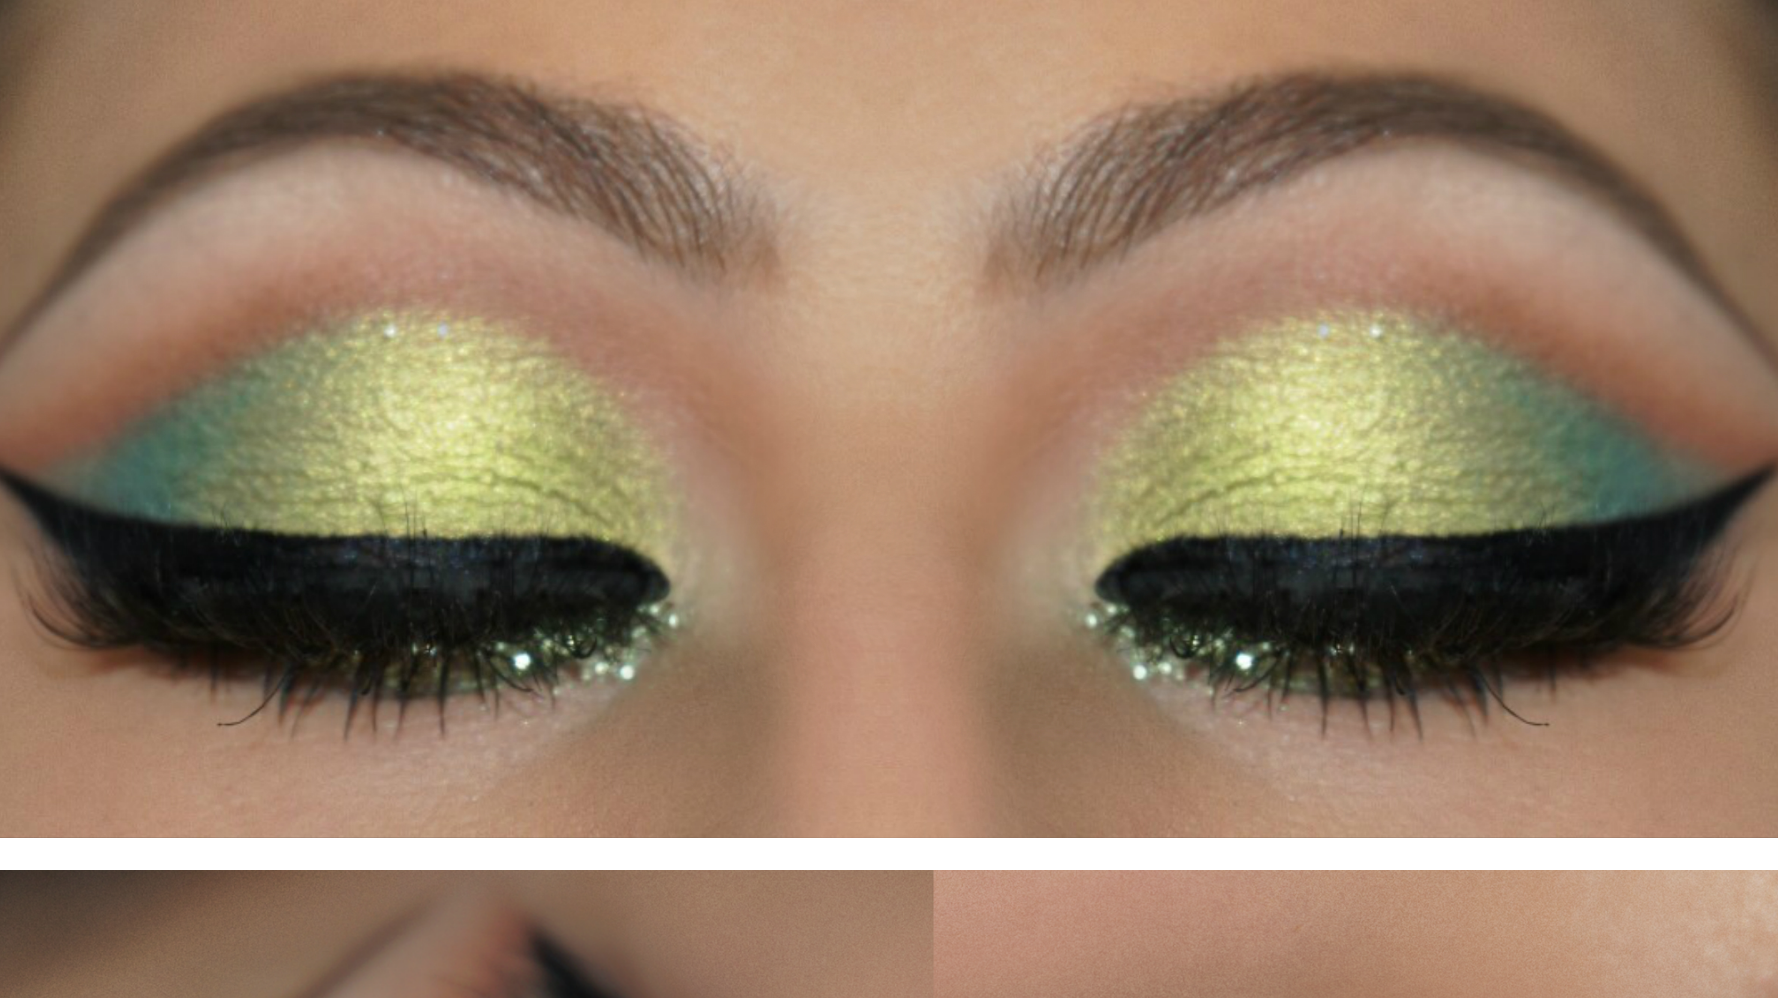 Get the Look: Spring Green Makeup Tutorial